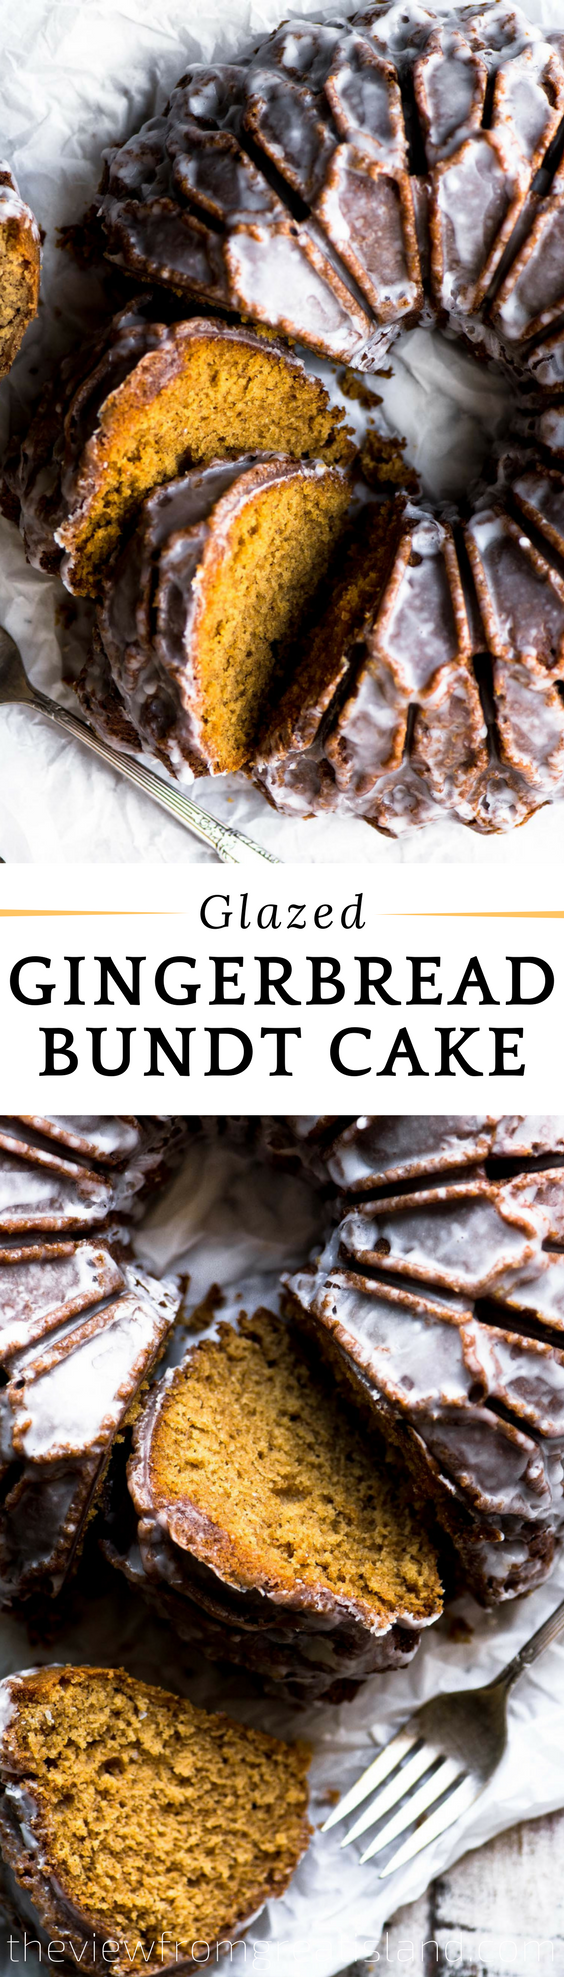 Glazed Gingerbread Bundt Cake ~ A tender lightly spiced gingerbread cake iced with a thin sugar glaze ~ this delicious cake is guaranteed to get you in the holiday spirit. #cake #gingerbread #bundtcake #bestgingerbreadcake #Christmascake #holidaycake #coffeecake #breakfastcake #dessert #coffeebreak #brunchcake #fallcake #wintercake